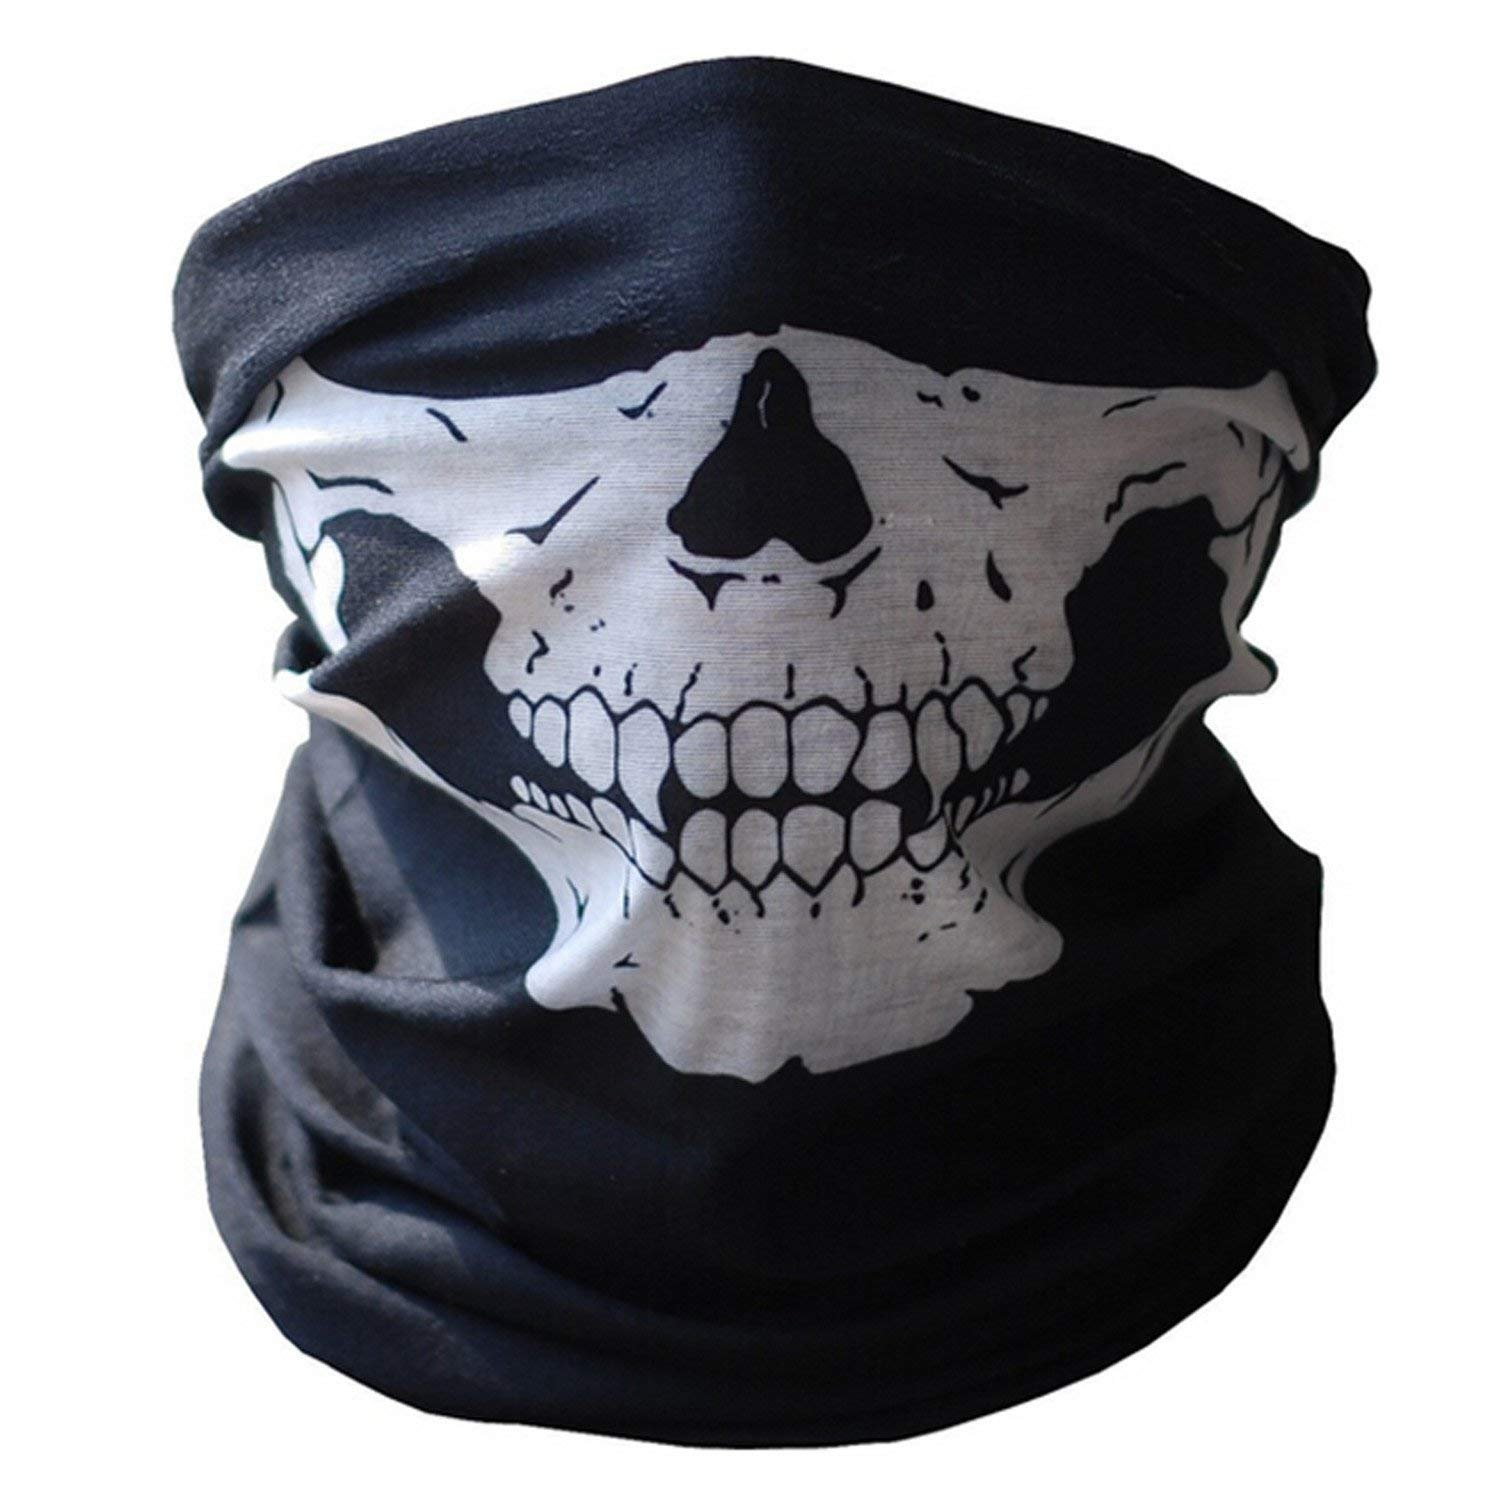 Skull Face Mask for Adult Halloween Dance Party,Motorcycle Biker Snowboards,2 Set Pitayaa fm-001